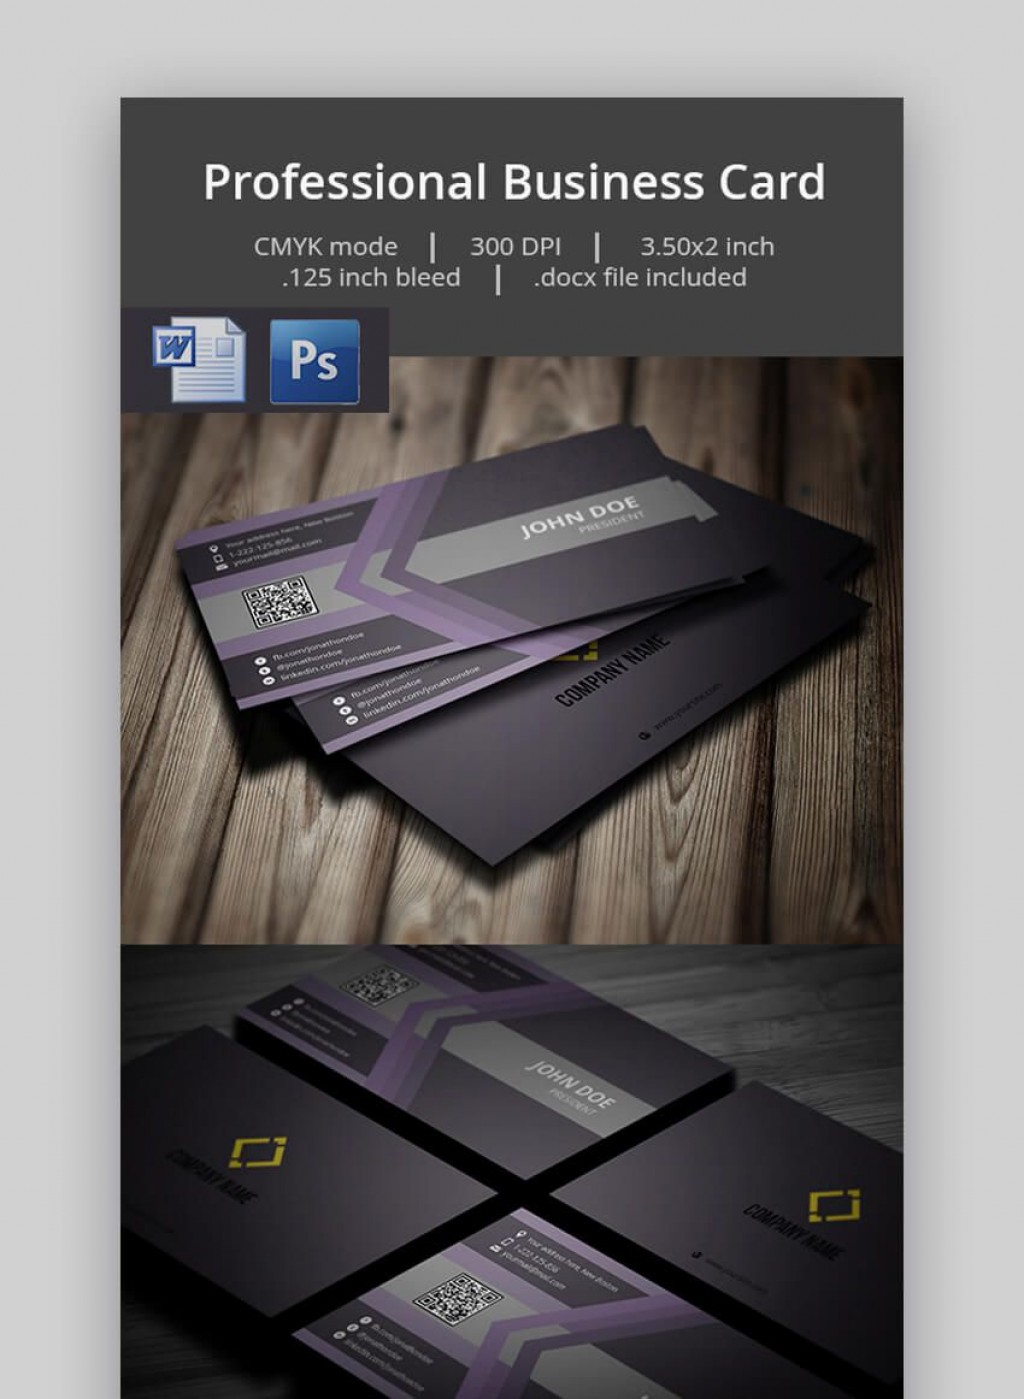 009 Formidable M Office Busines Card Template Highest Clarity  Templates Microsoft 2010 2007Large